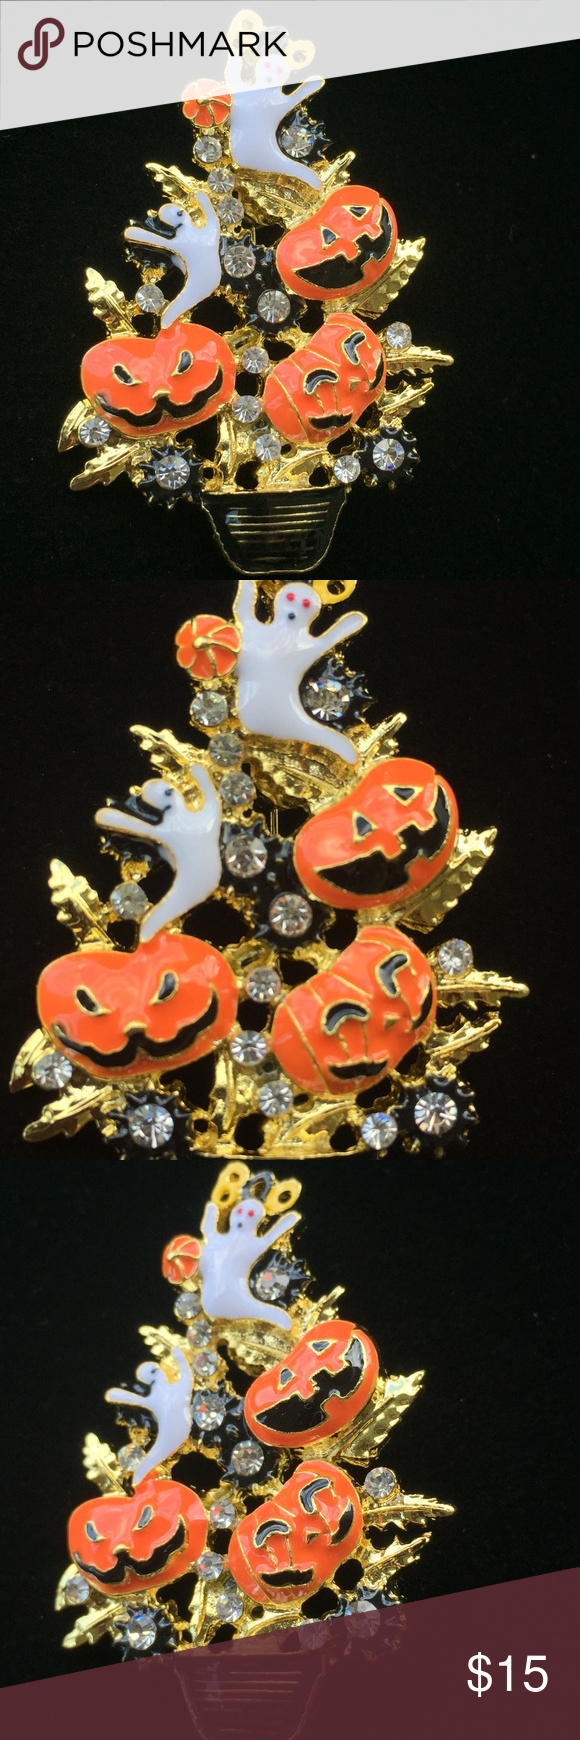 Ghost pumpkin halloween tree pin brooch pendant (With